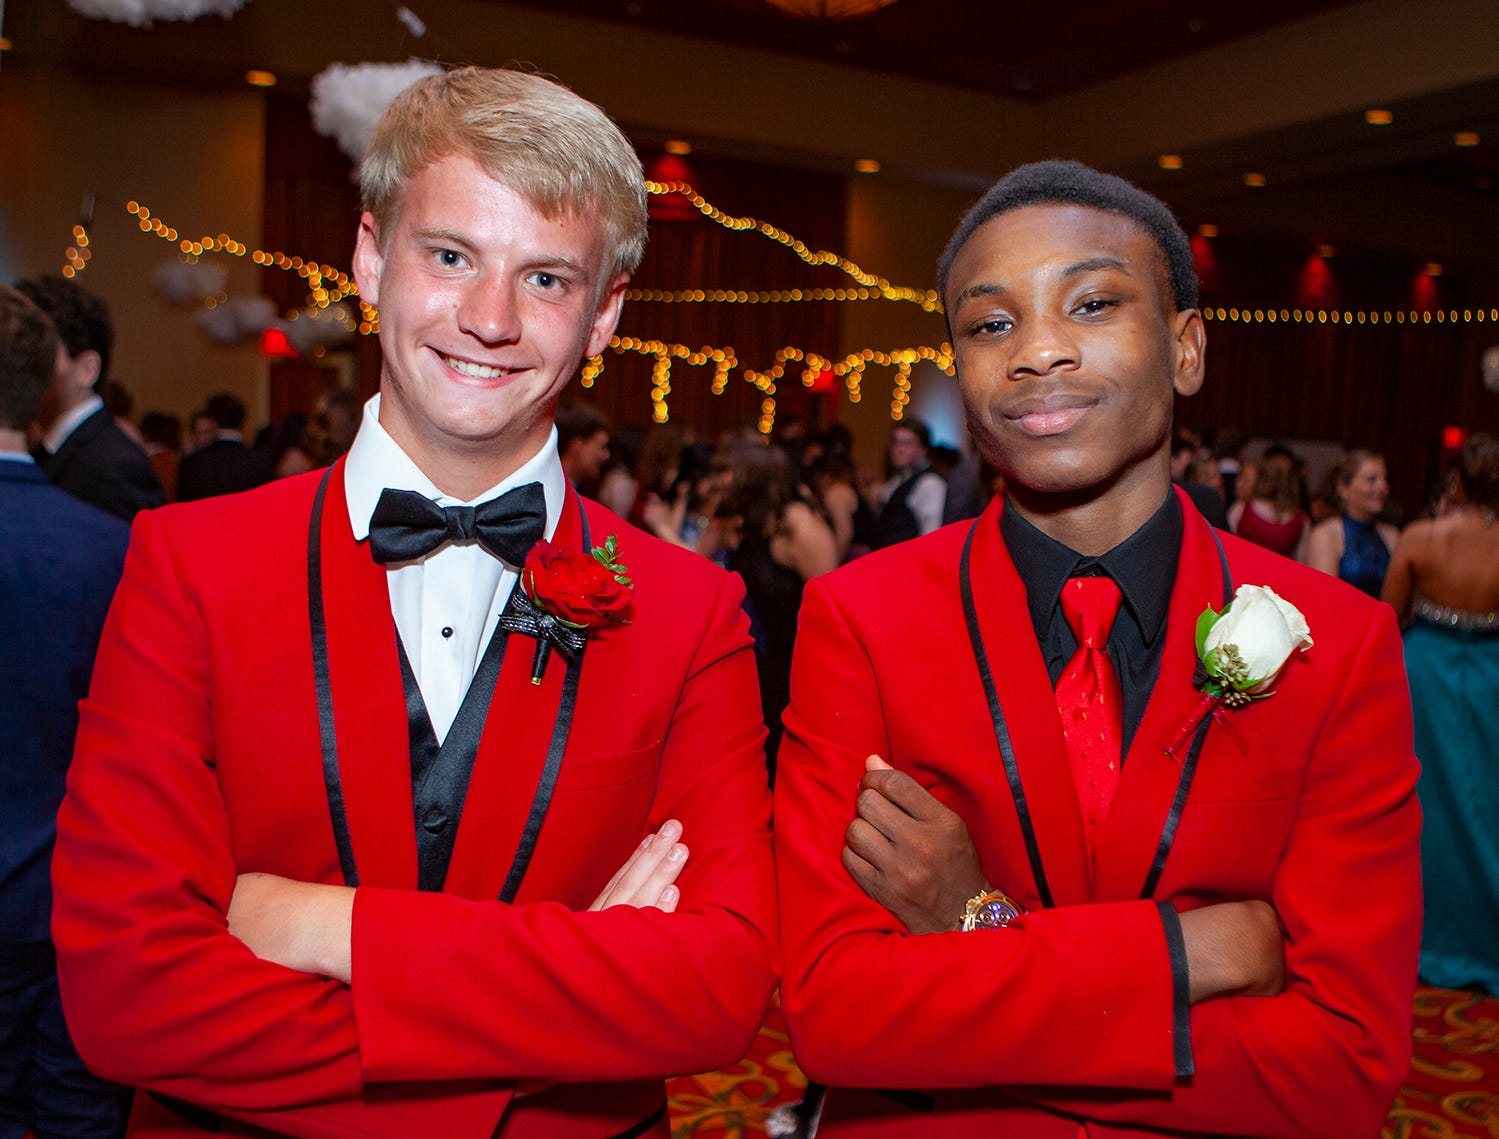 Daniel Brown and Joshua Lee were among those attending Central Magnet School's prom Saturday, April 6 at Embassy Suites in Murfreesboro.